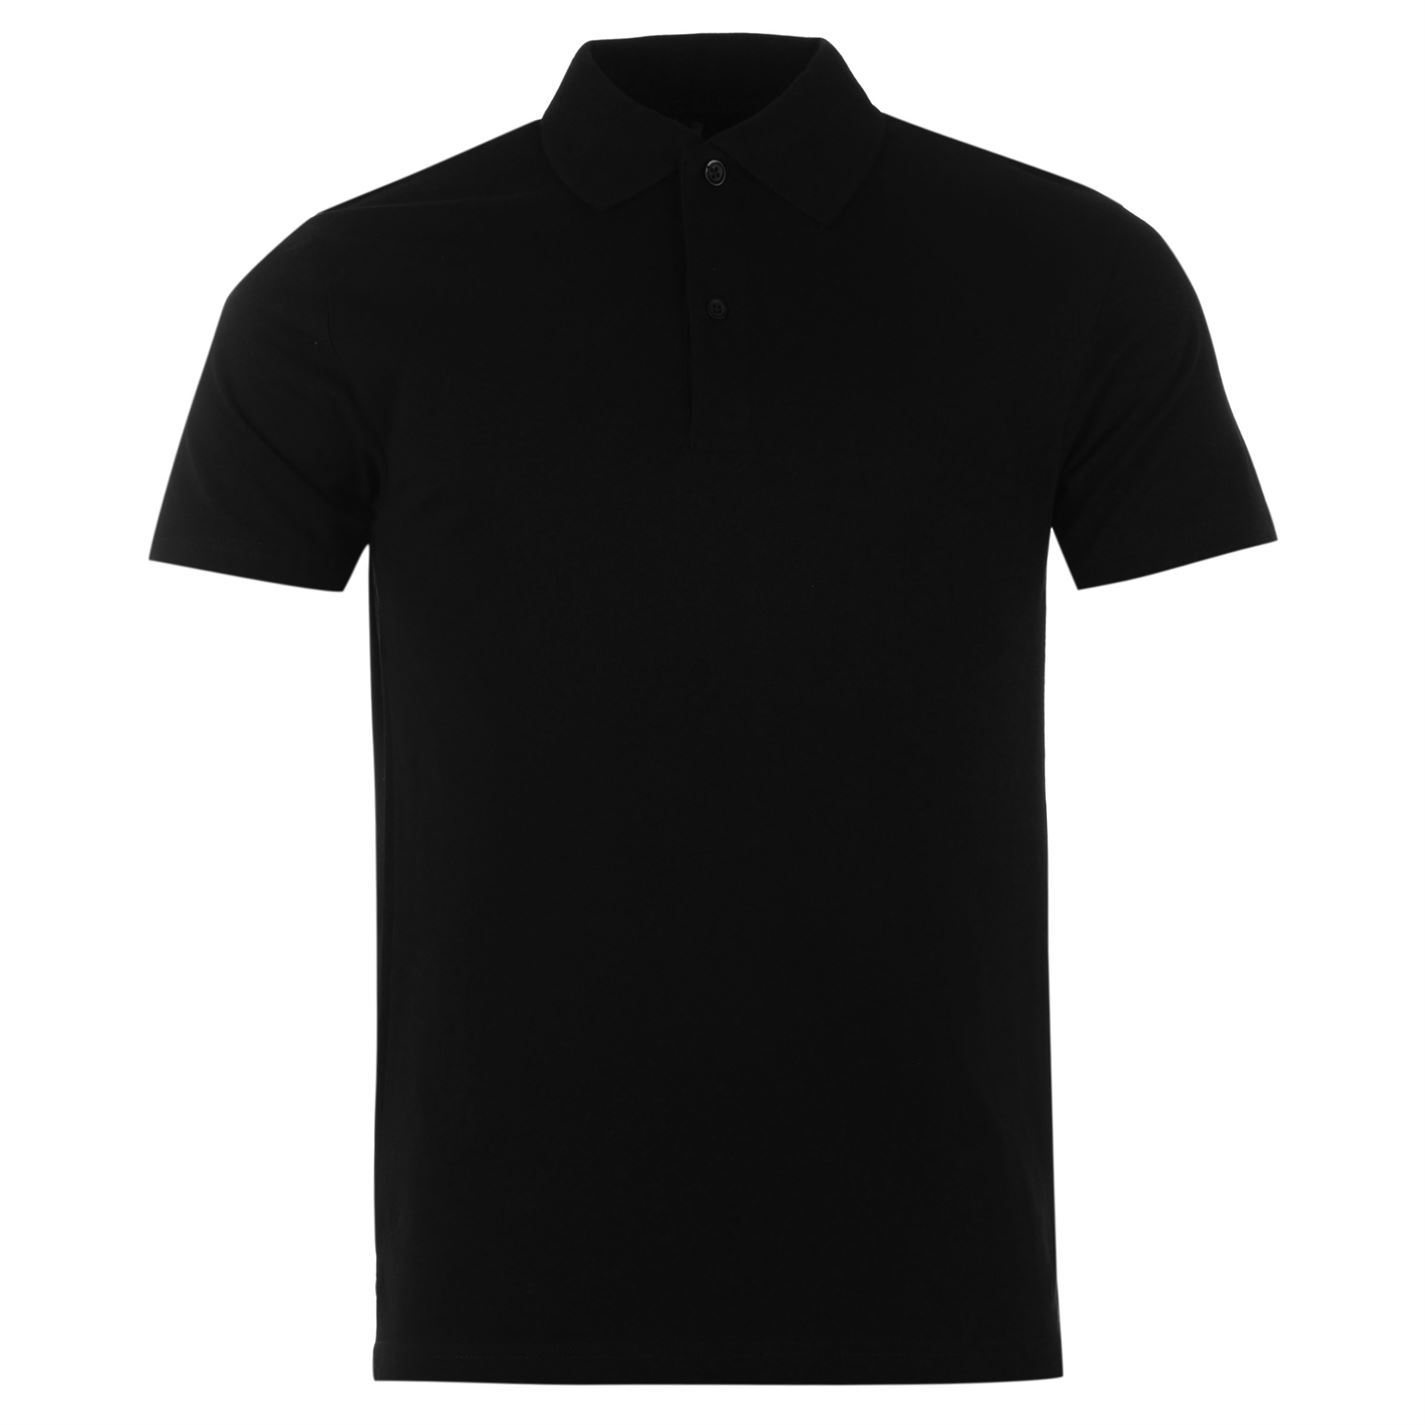 61c2aad4703 Details about Donnay Two Pack Polo Shirt Mens Black Collared T-Shirt Top  Tee Sportswear